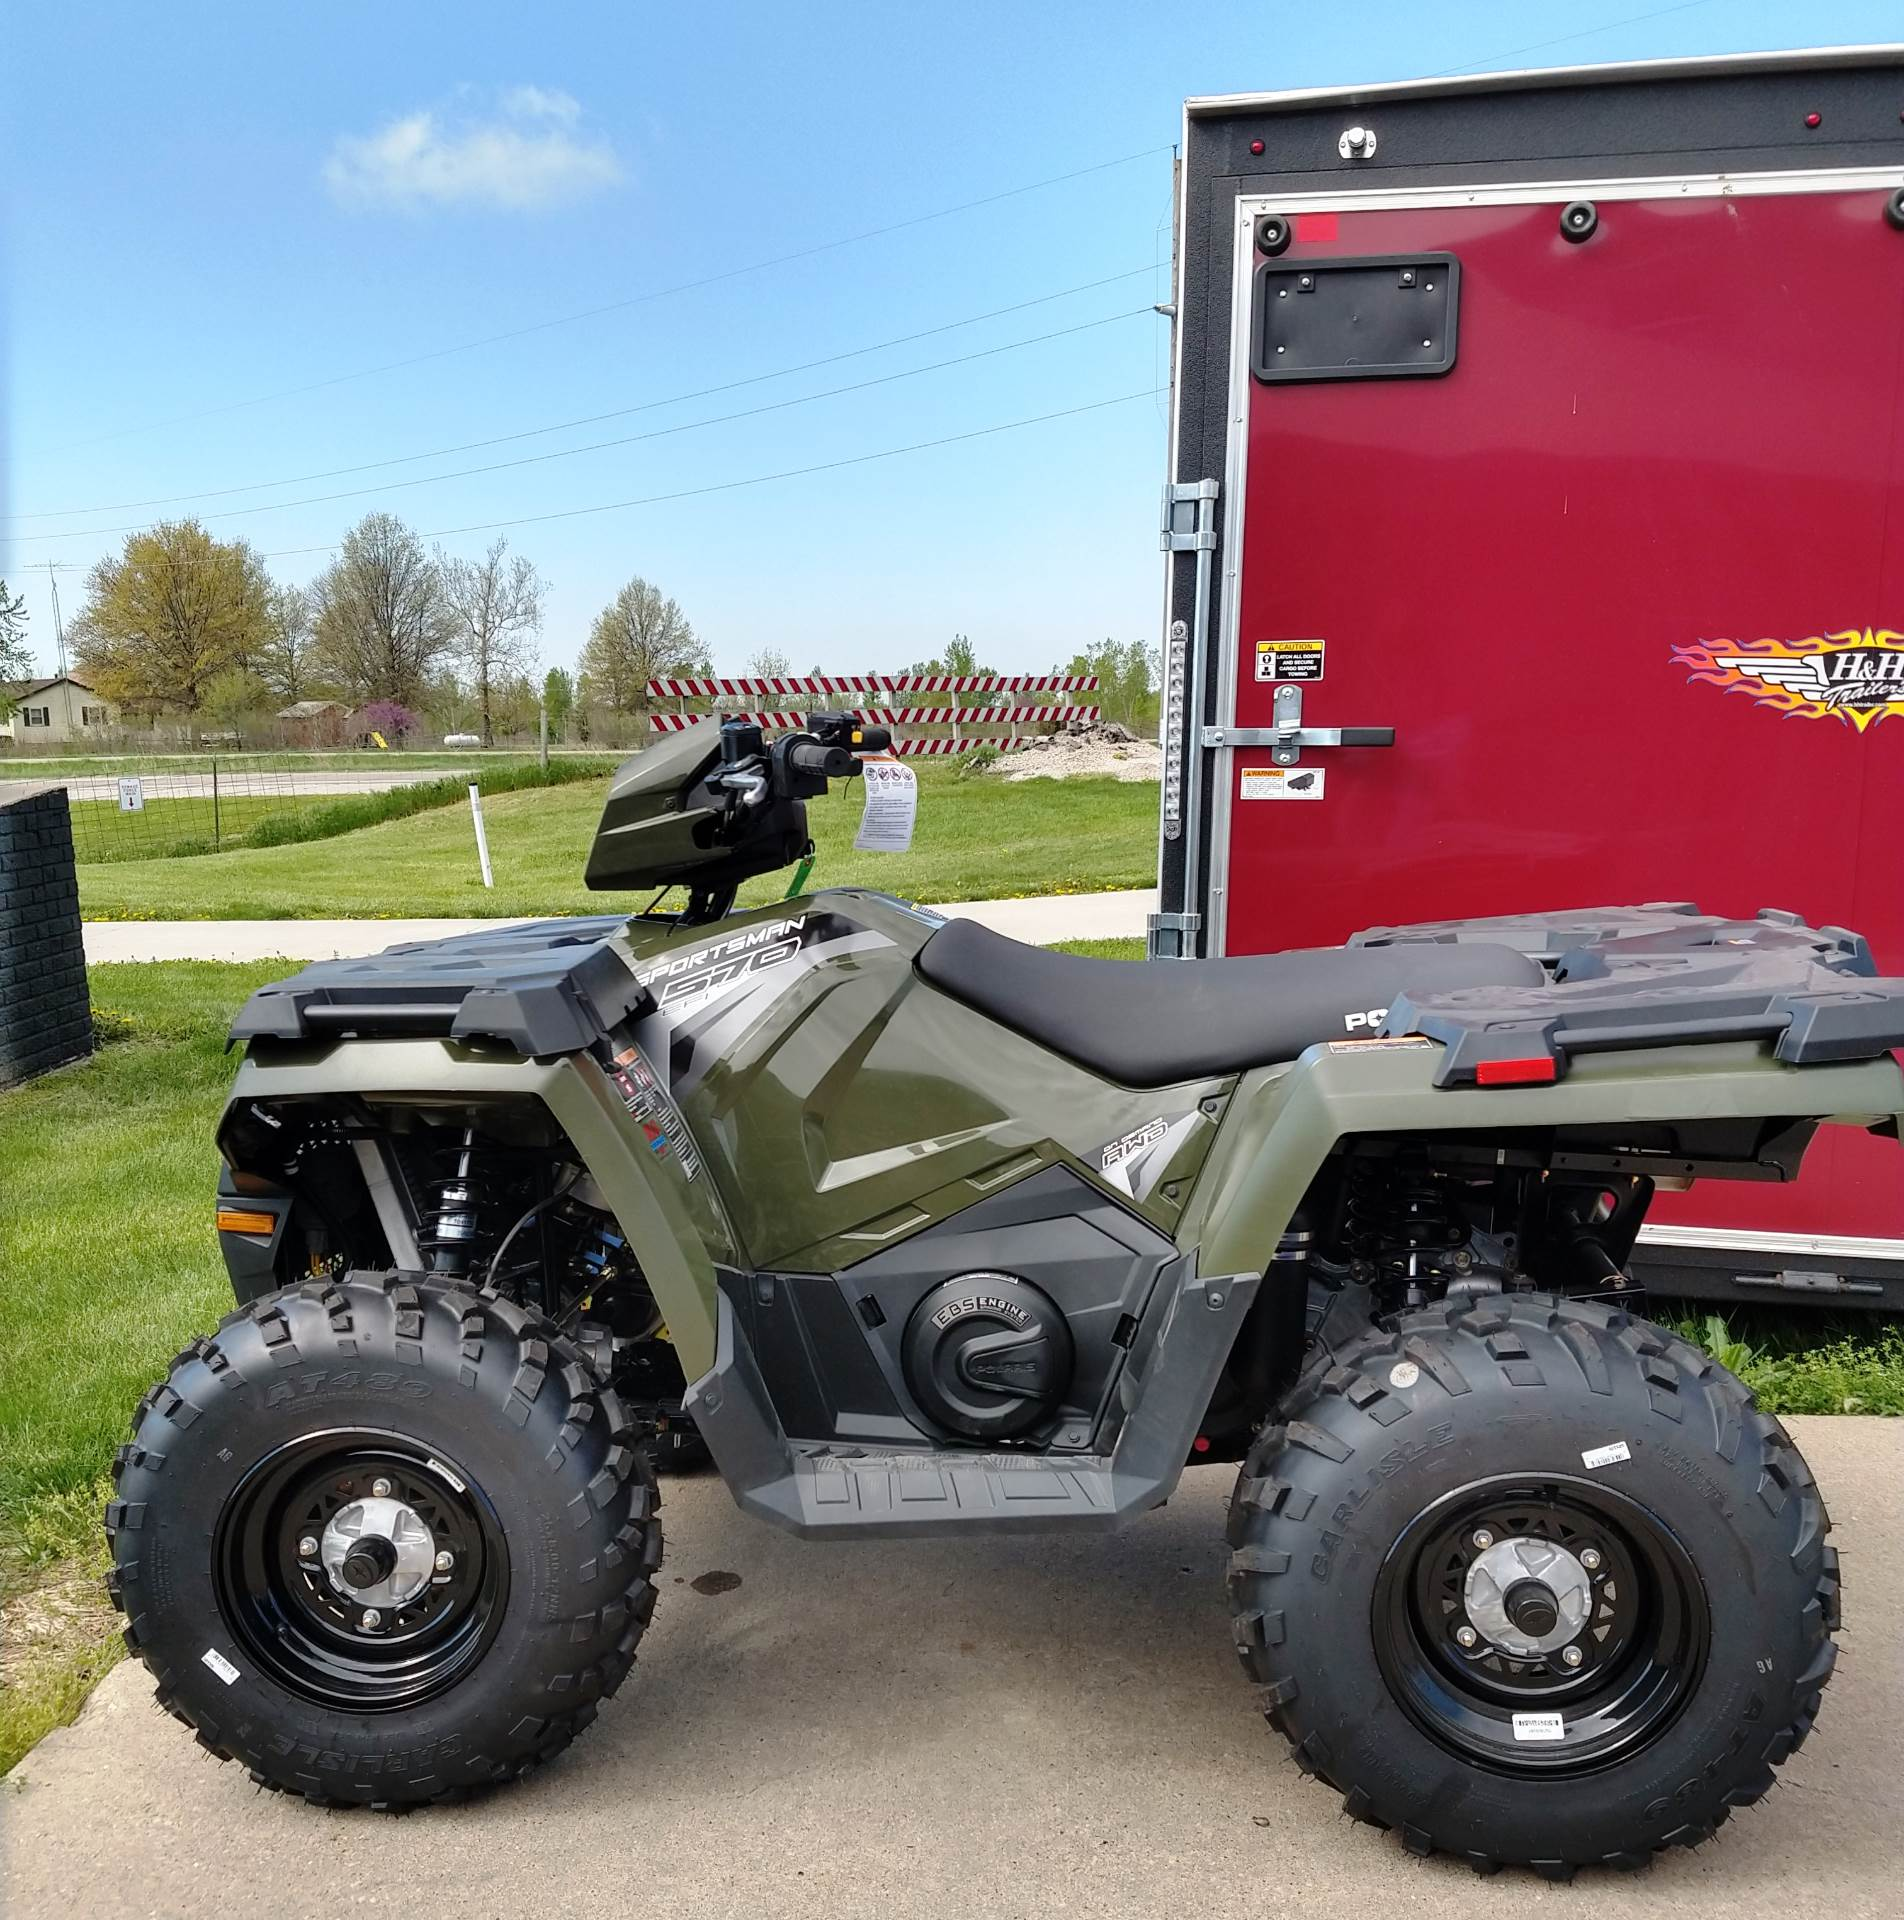 2019 Polaris Sportsman 570 EPS in Ottumwa, Iowa - Photo 4